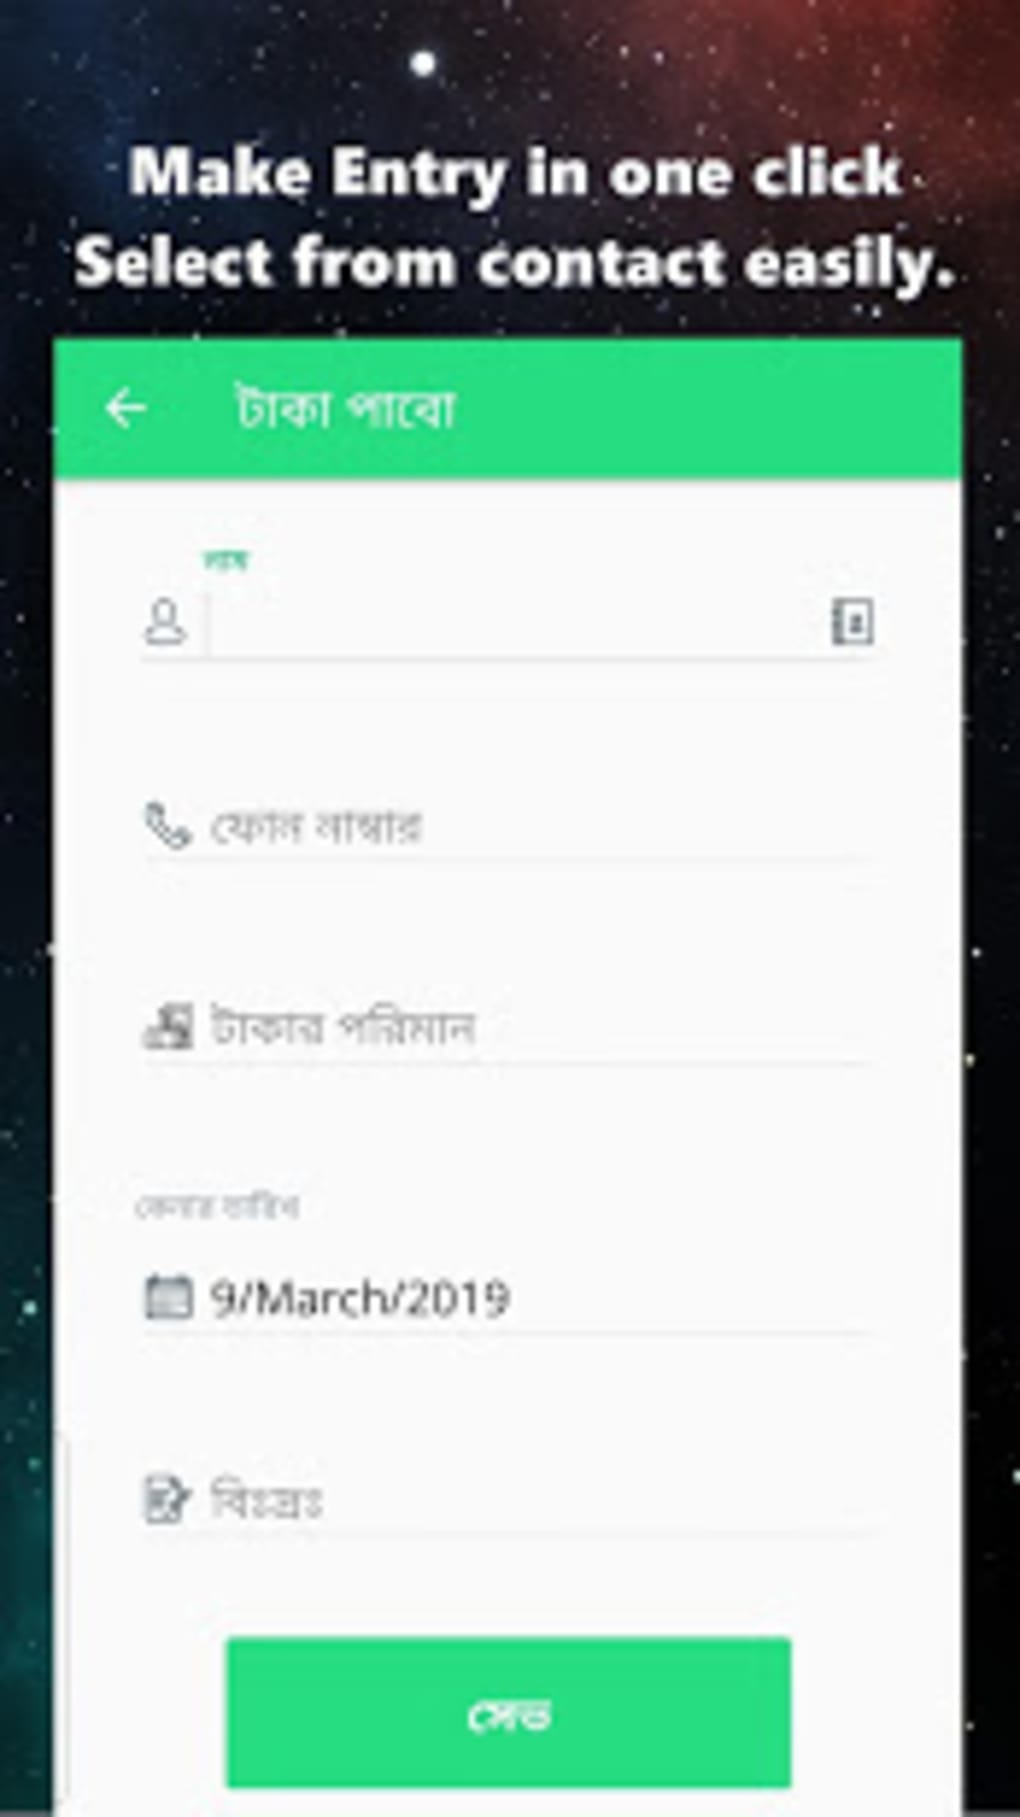 Tally - Expense Manager টল - জম খরচ হসব for Android - Download